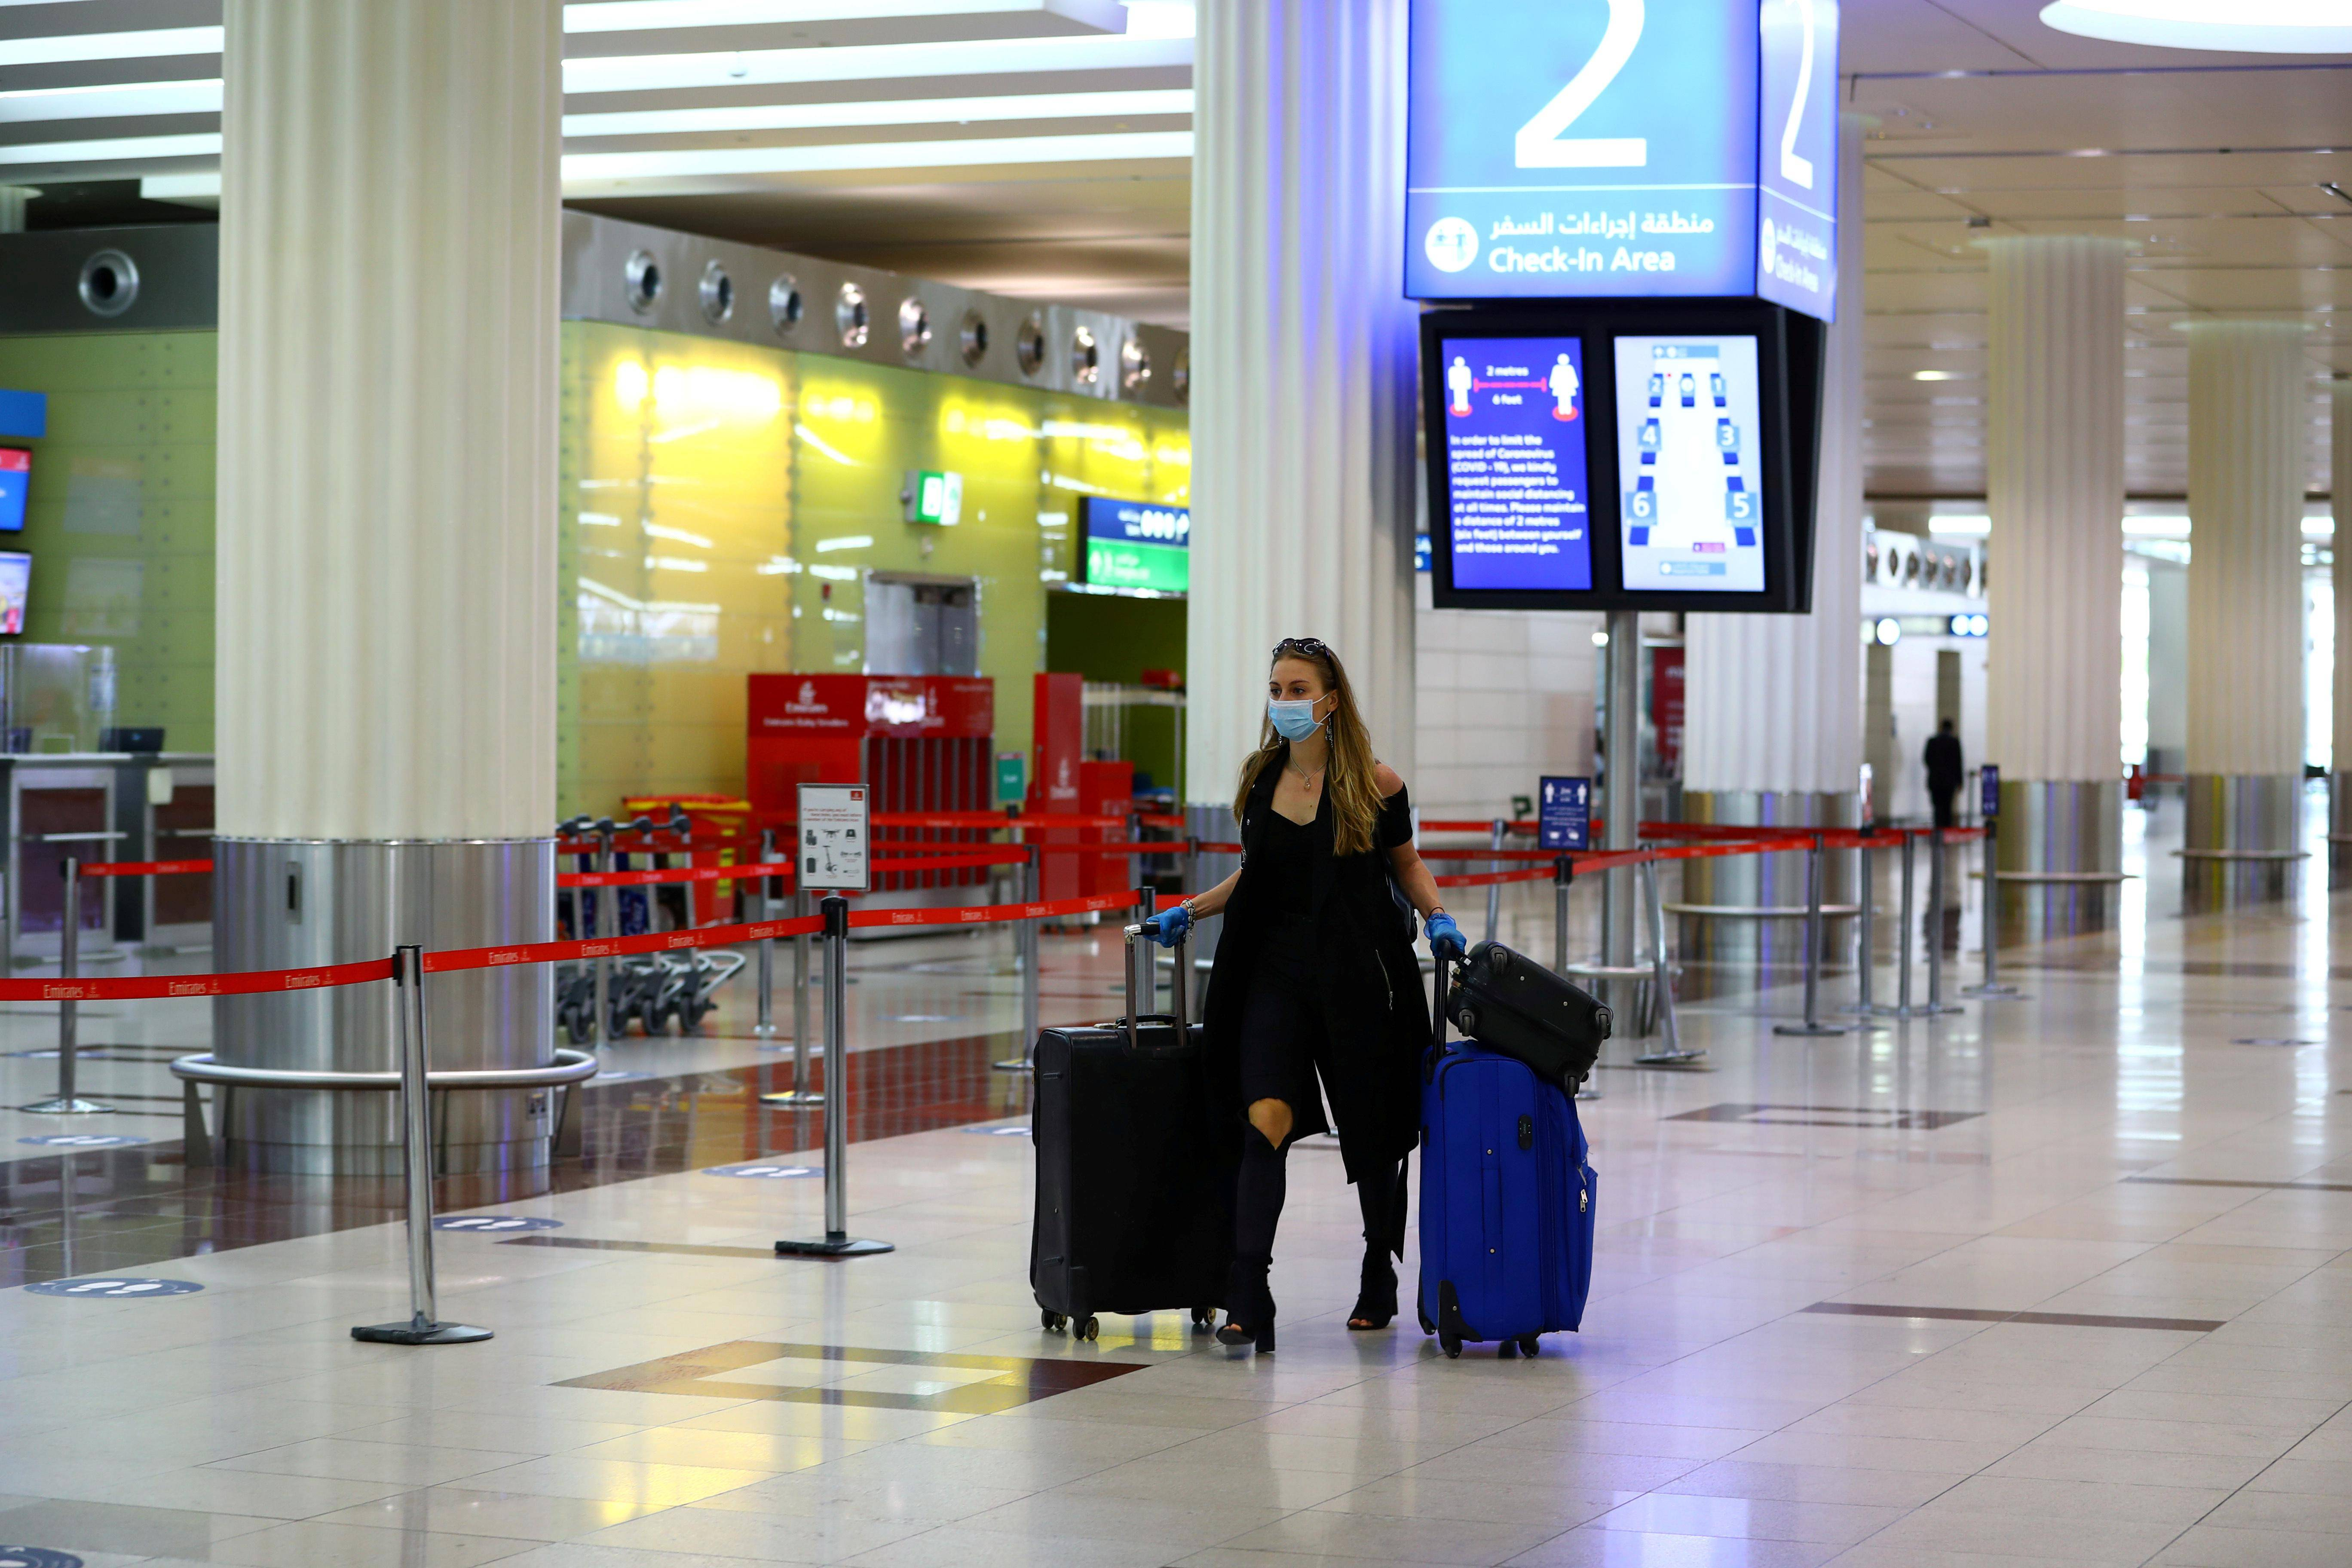 UAE: Flights from India, Pakistan, 2 others remain suspended